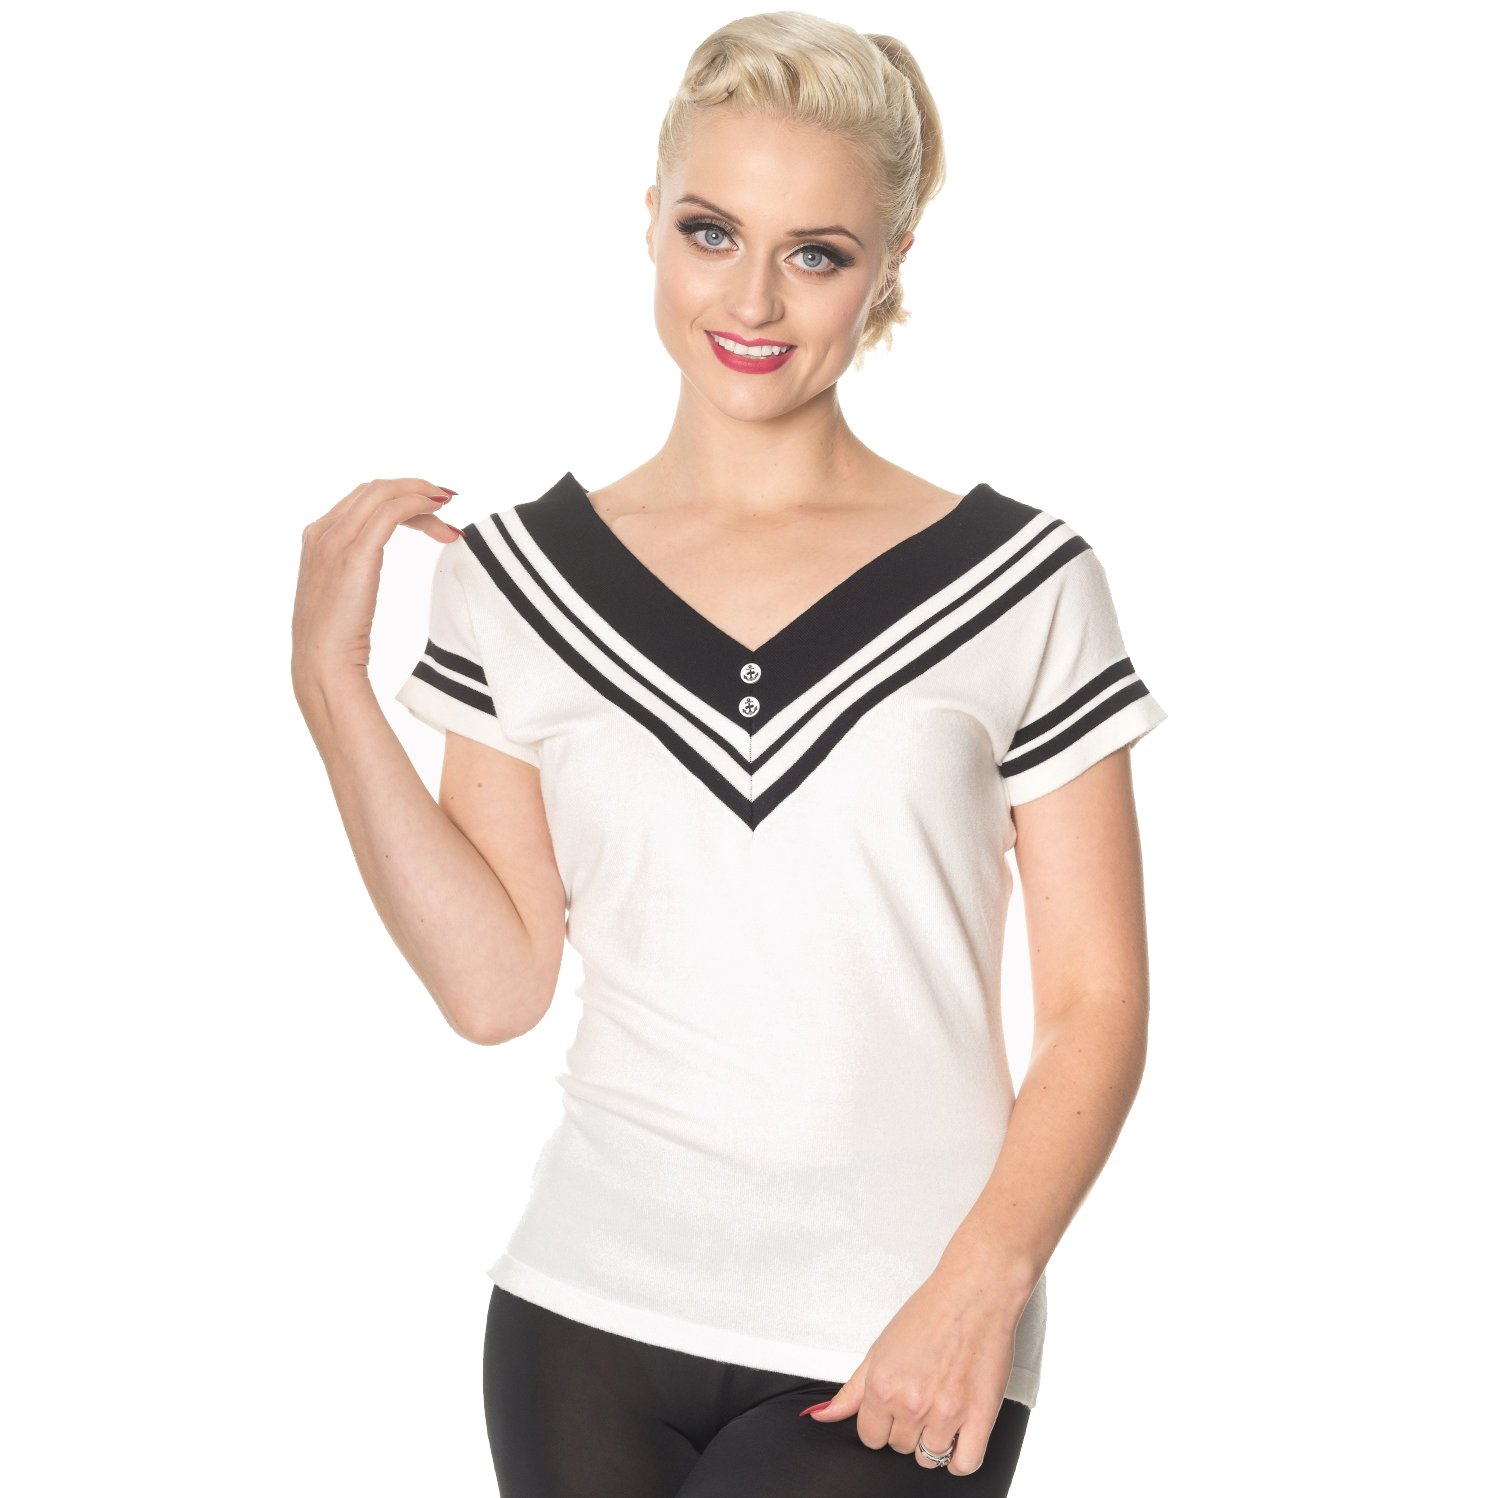 1950s Rockabilly & Pin Up Tops, Blouses, Shirts Dancing Days Cedar Nautical Sailor Short Sleeve 1950s Vintage Retro Sweater Top £26.99 AT vintagedancer.com